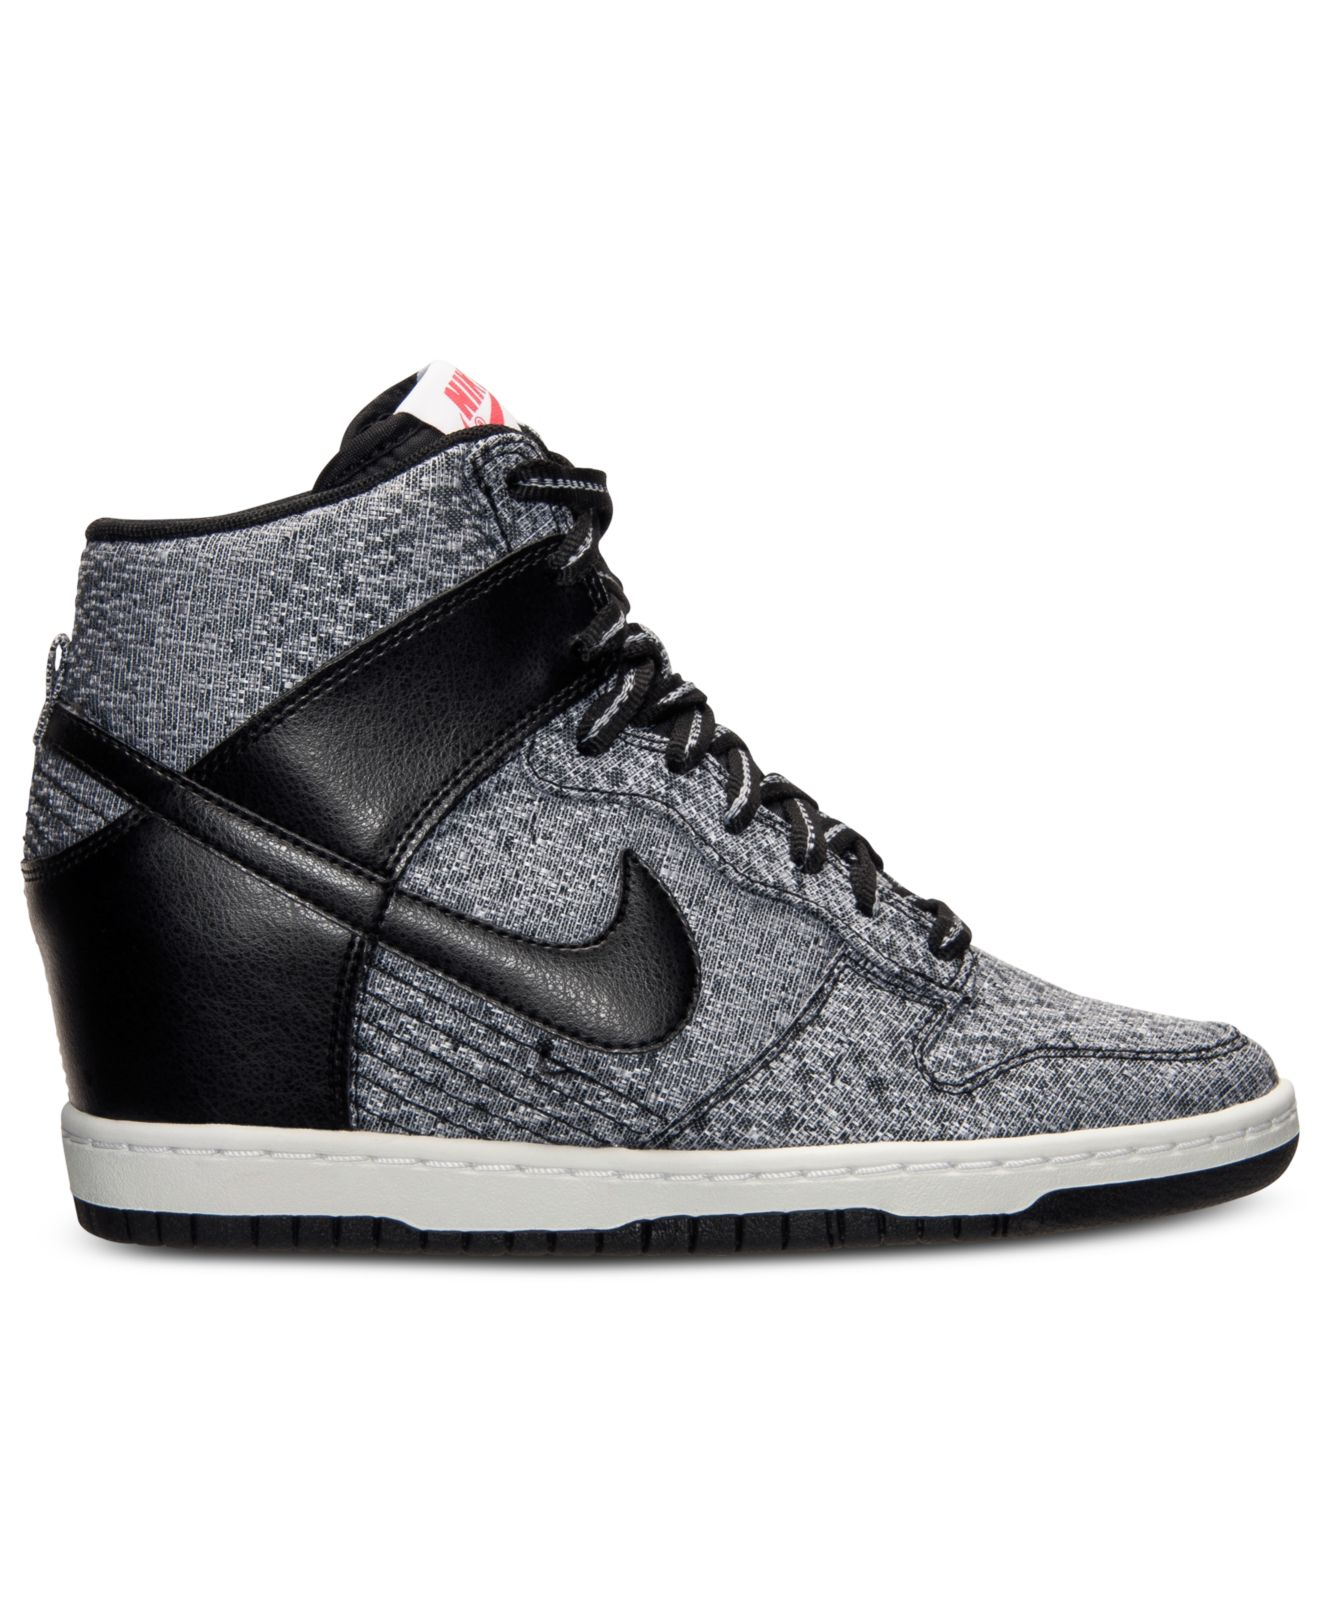 5d6da2266af Gallery. Previously sold at  Macy s · Women s Nike Dunk Women s Nike Dunk  Sky Hi ...